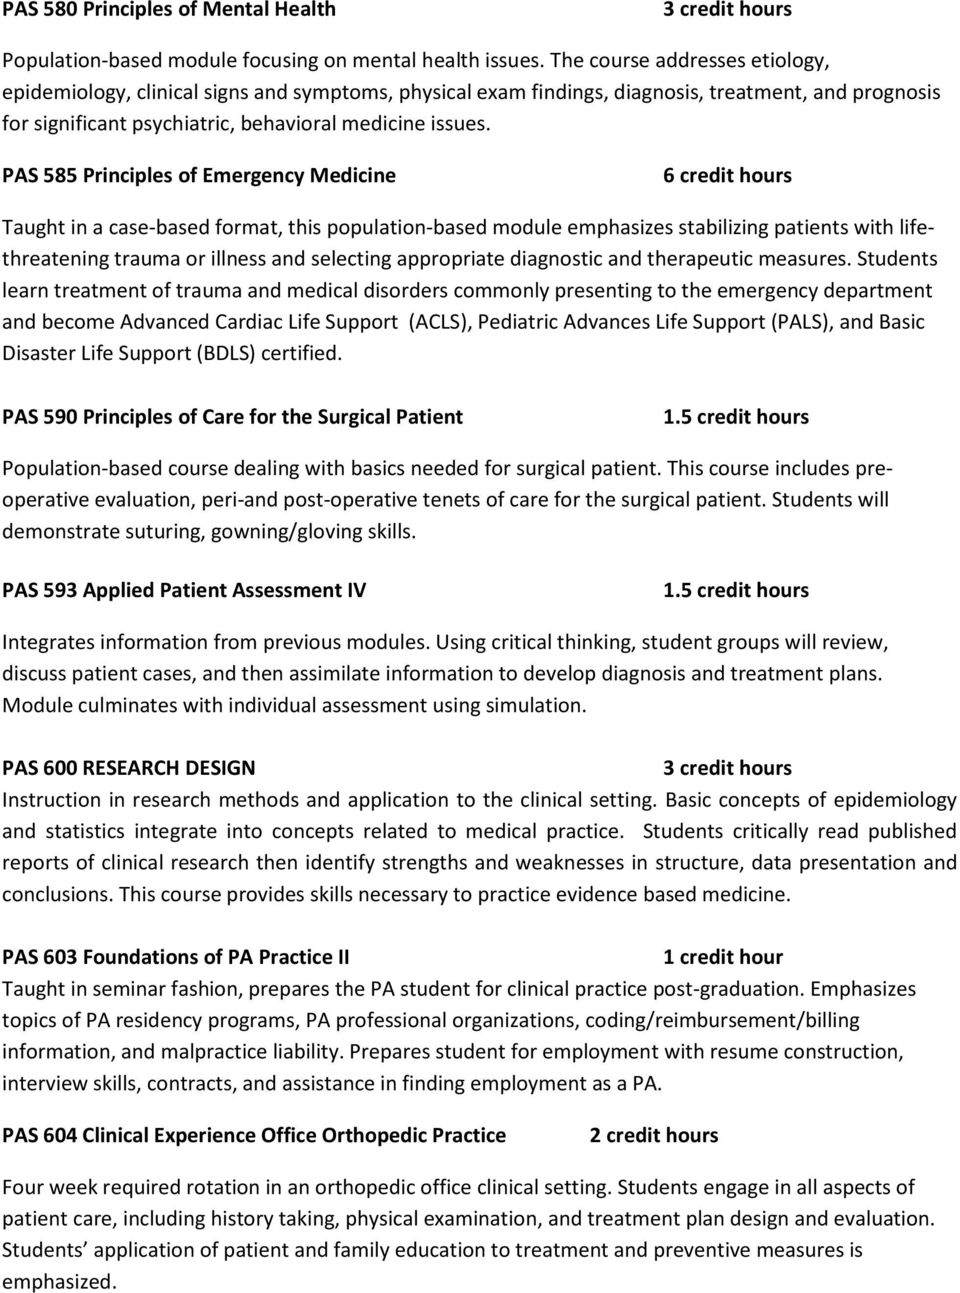 PAS 585 Principles of Emergency Medicine Taught in a case-based format, this population-based module emphasizes stabilizing patients with lifethreatening trauma or illness and selecting appropriate